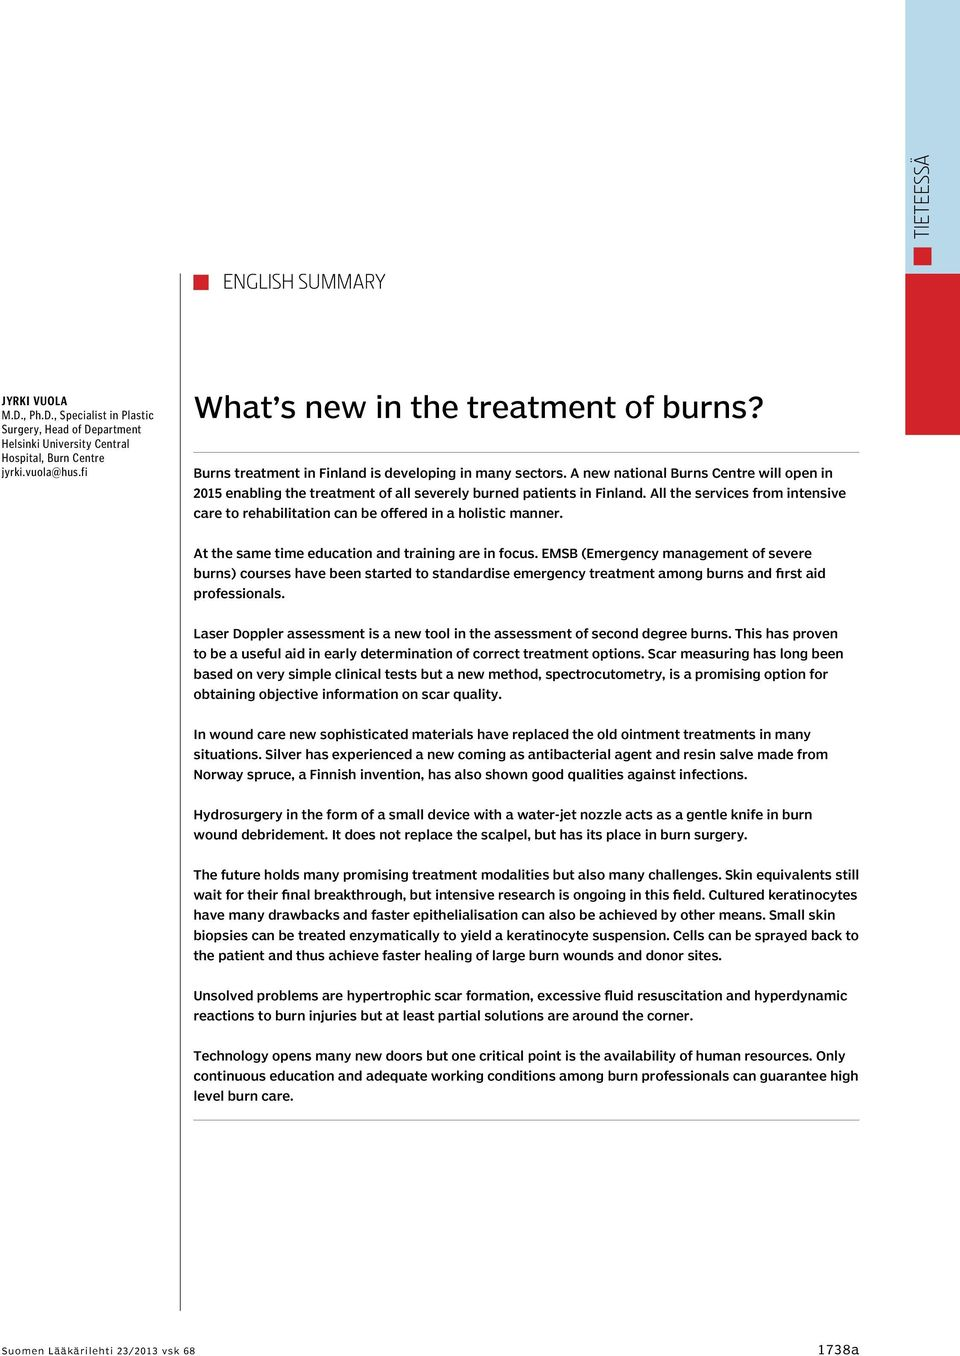 A new national Burns Centre will open in 2015 enabling the treatment of all severely burned patients in Finland.